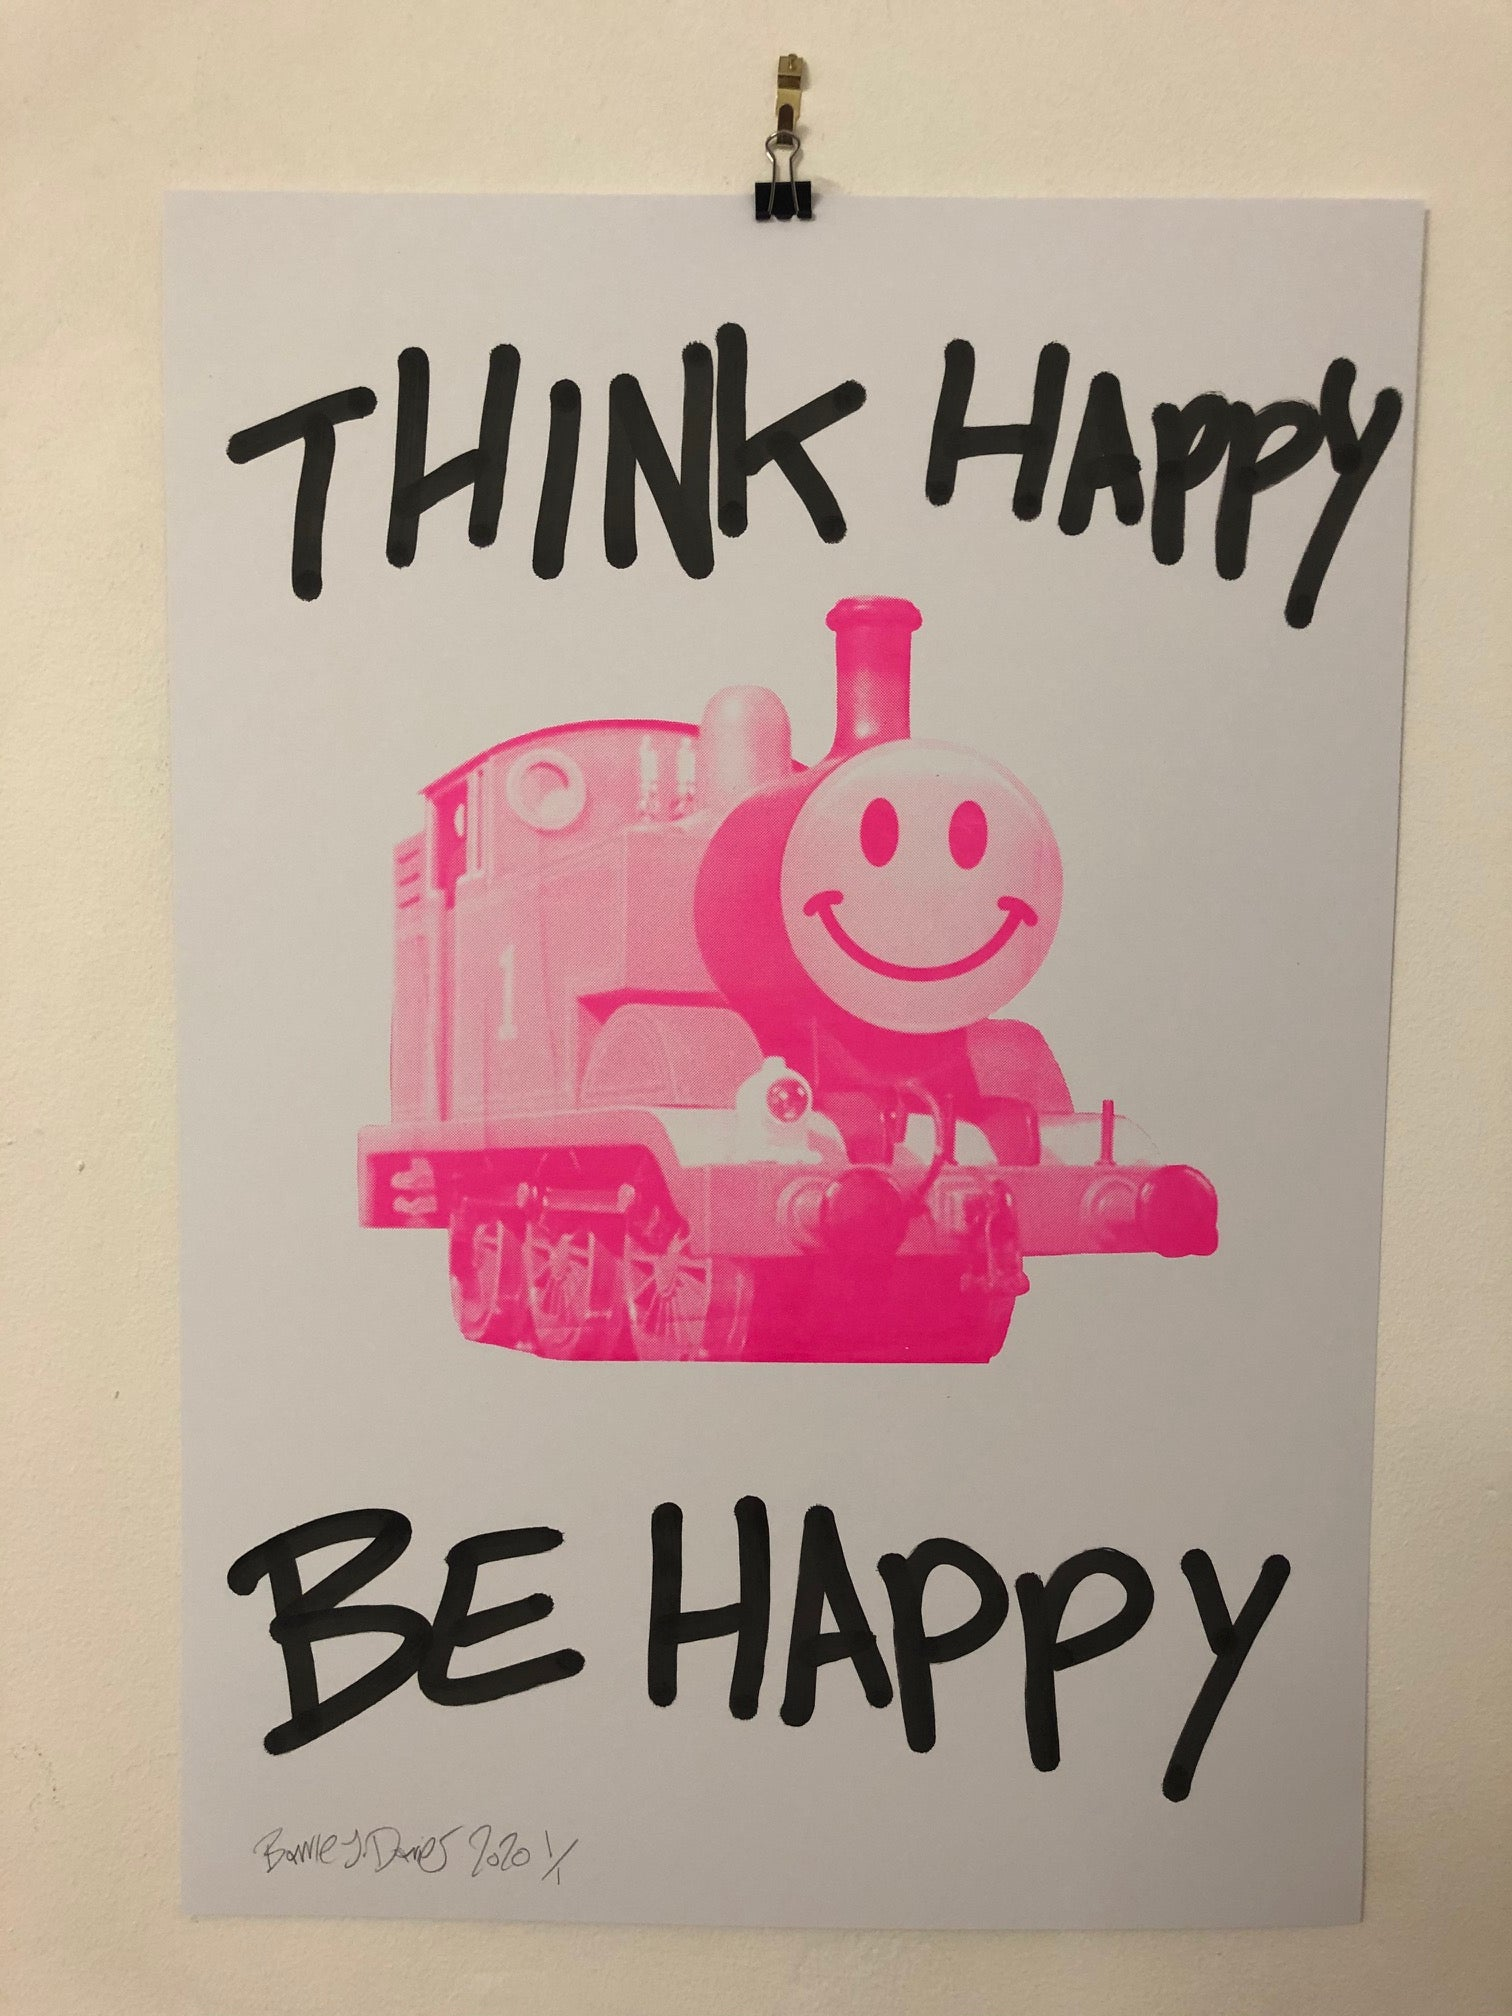 Think Happy Trip Print by Barrie J Davies 2020 - unframed Silkscreen print on paper (hand finished) edition of 1/1 - A2 size 42cm x 59.4cm. Urban Pop Art and Street art inspired Artist based in Brighton England UK - Pop Art Paintings, Street Art Prints & collectables